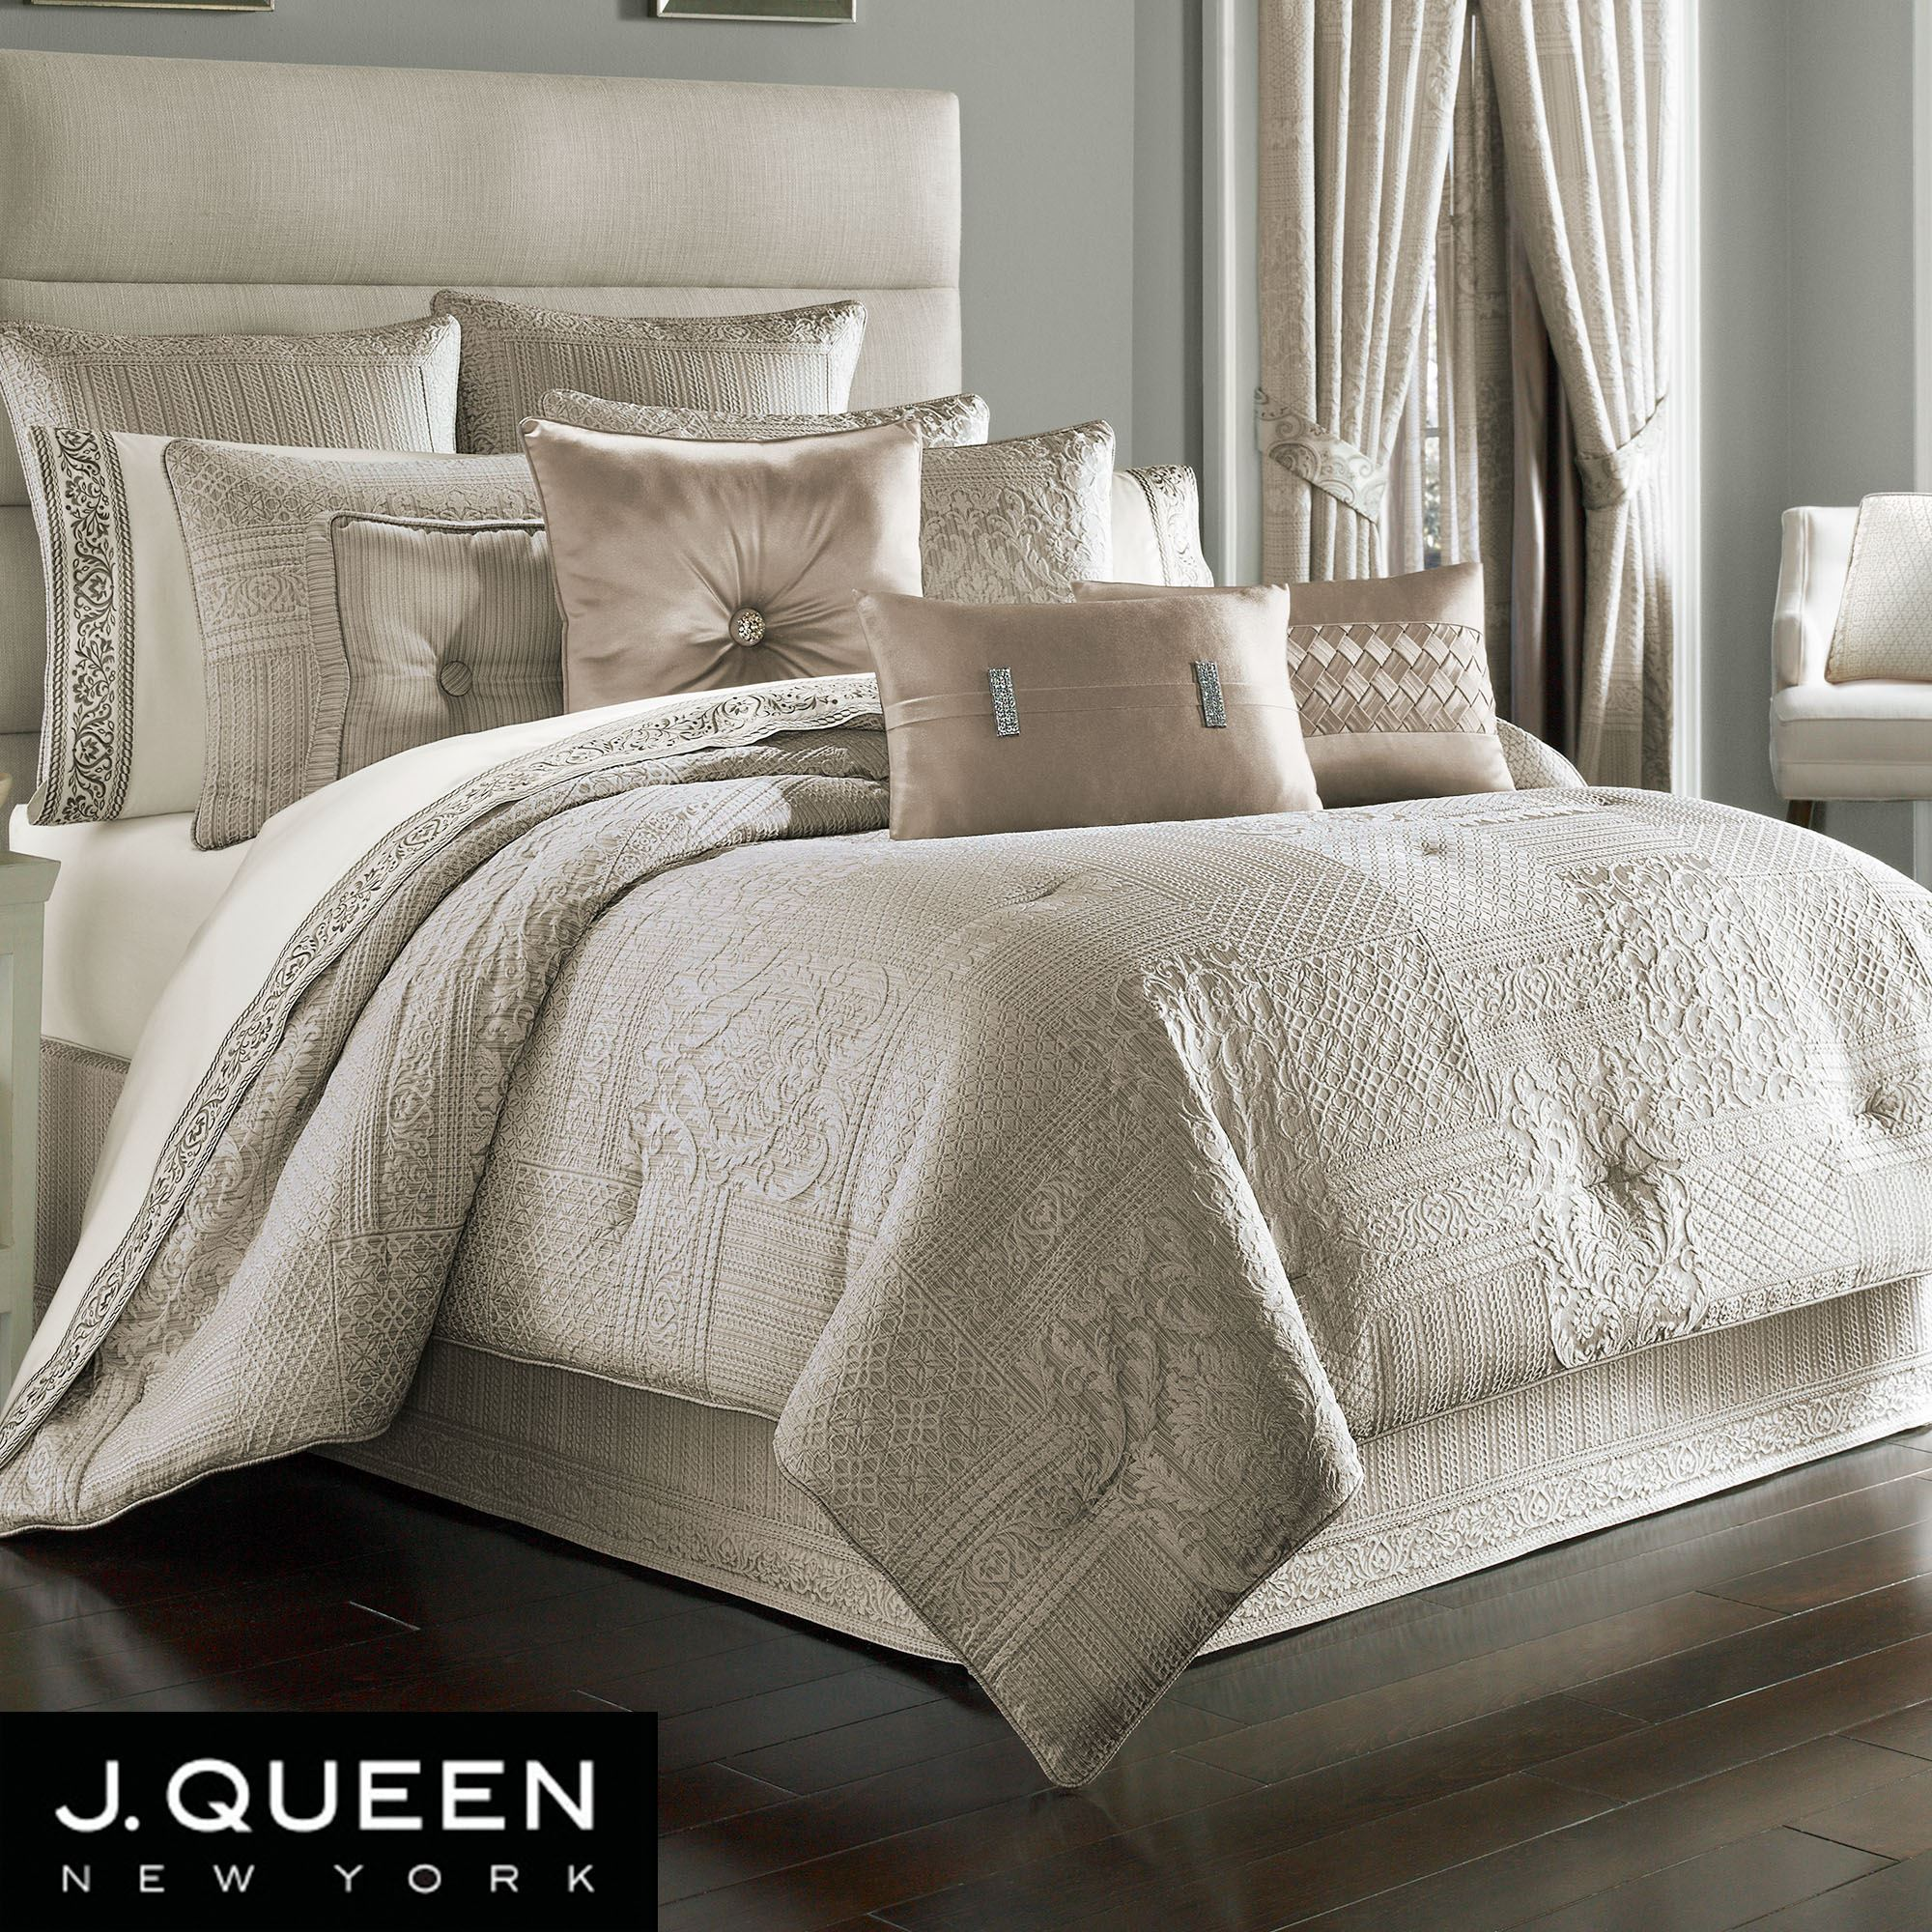 bedding queen corinna silver york pin comforter j by new